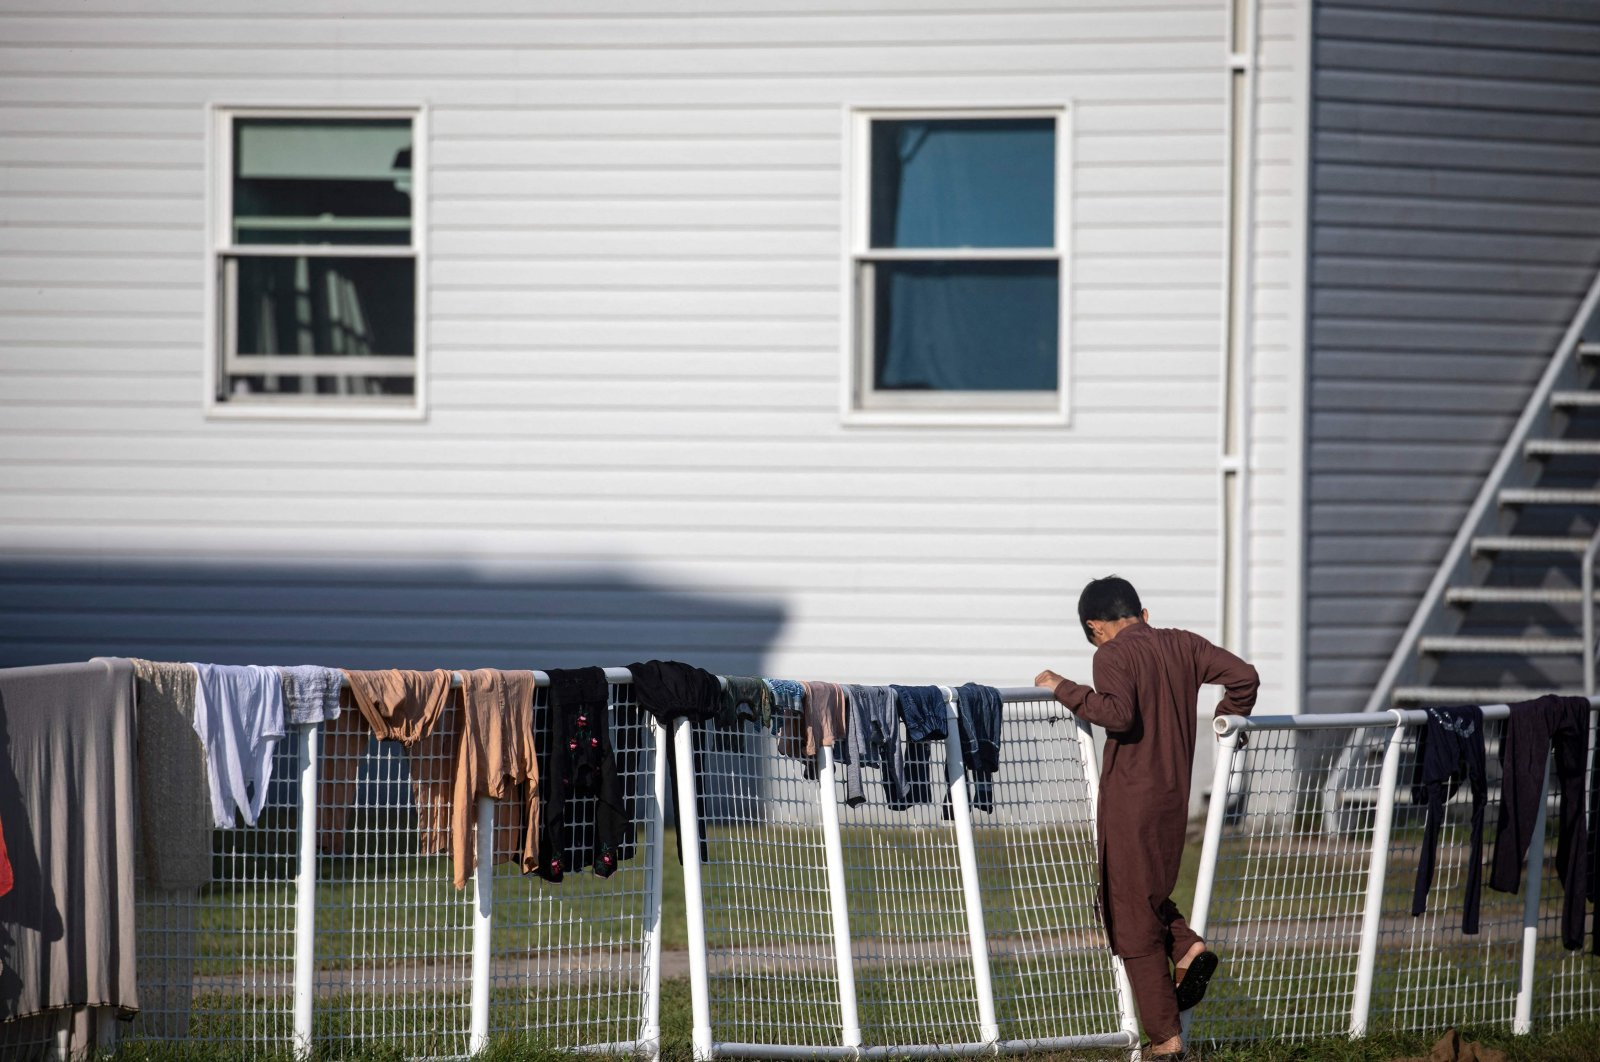 An Afghan refugee stands outside temporary housing at Ft. McCoy U.S. Army base, Sept. 30, 2021 in Ft. McCoy, Wisconsin, U.S. (AFP Photo)